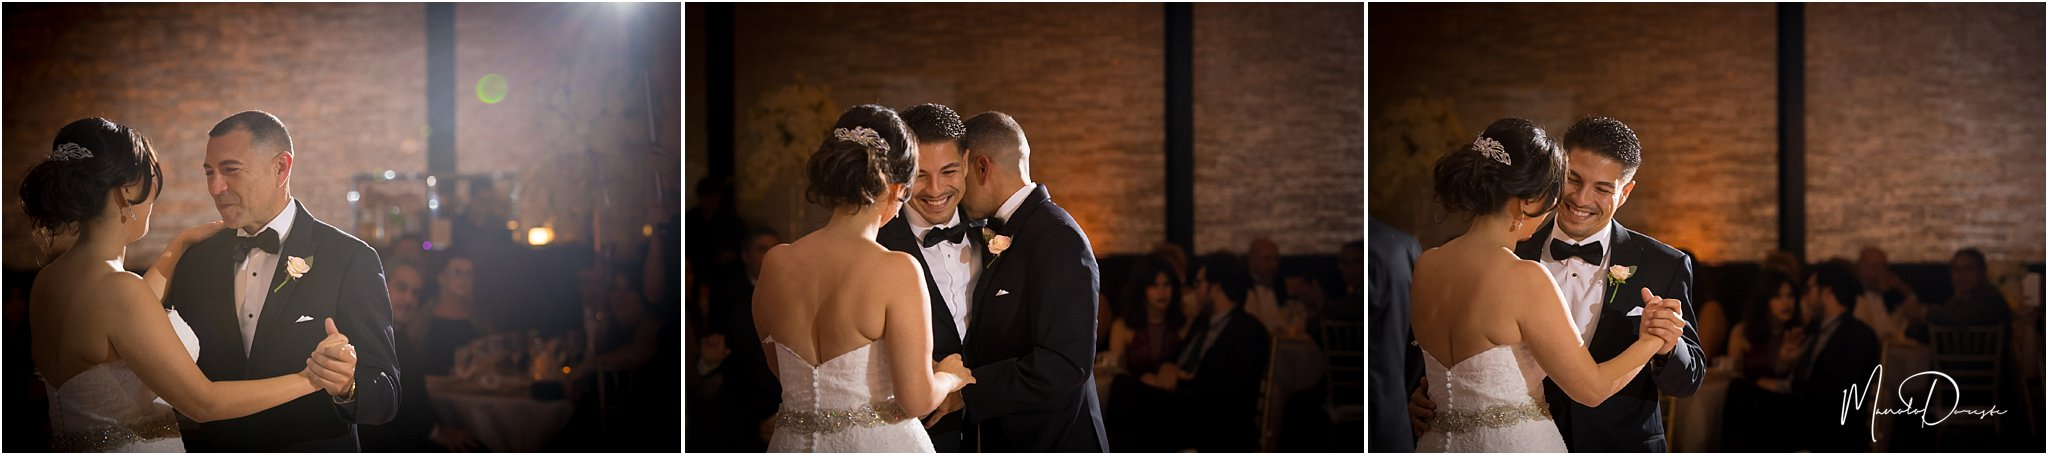 0097_ManoloDoreste_InFocusStudios_Wedding_Family_Photography_Miami_MiamiPhotographer.jpg